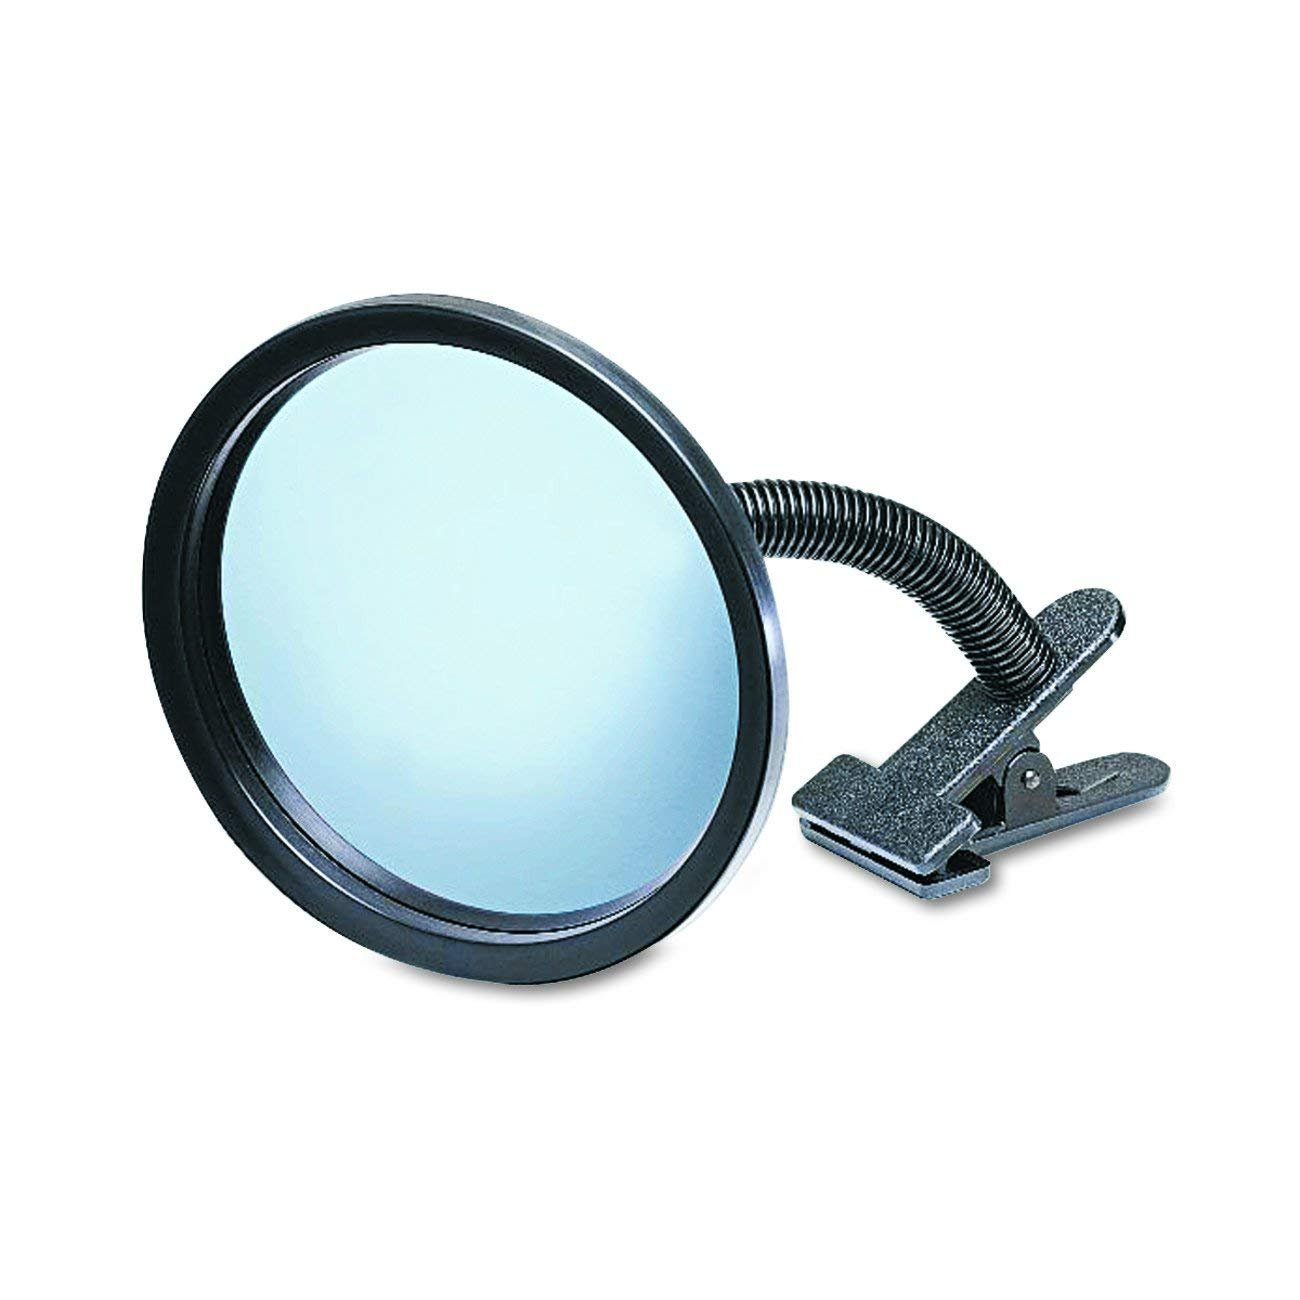 ICU7 Personal Safety and Security Clip-On Convex Security Mirror, 7'' Diameter (Pack of 1)